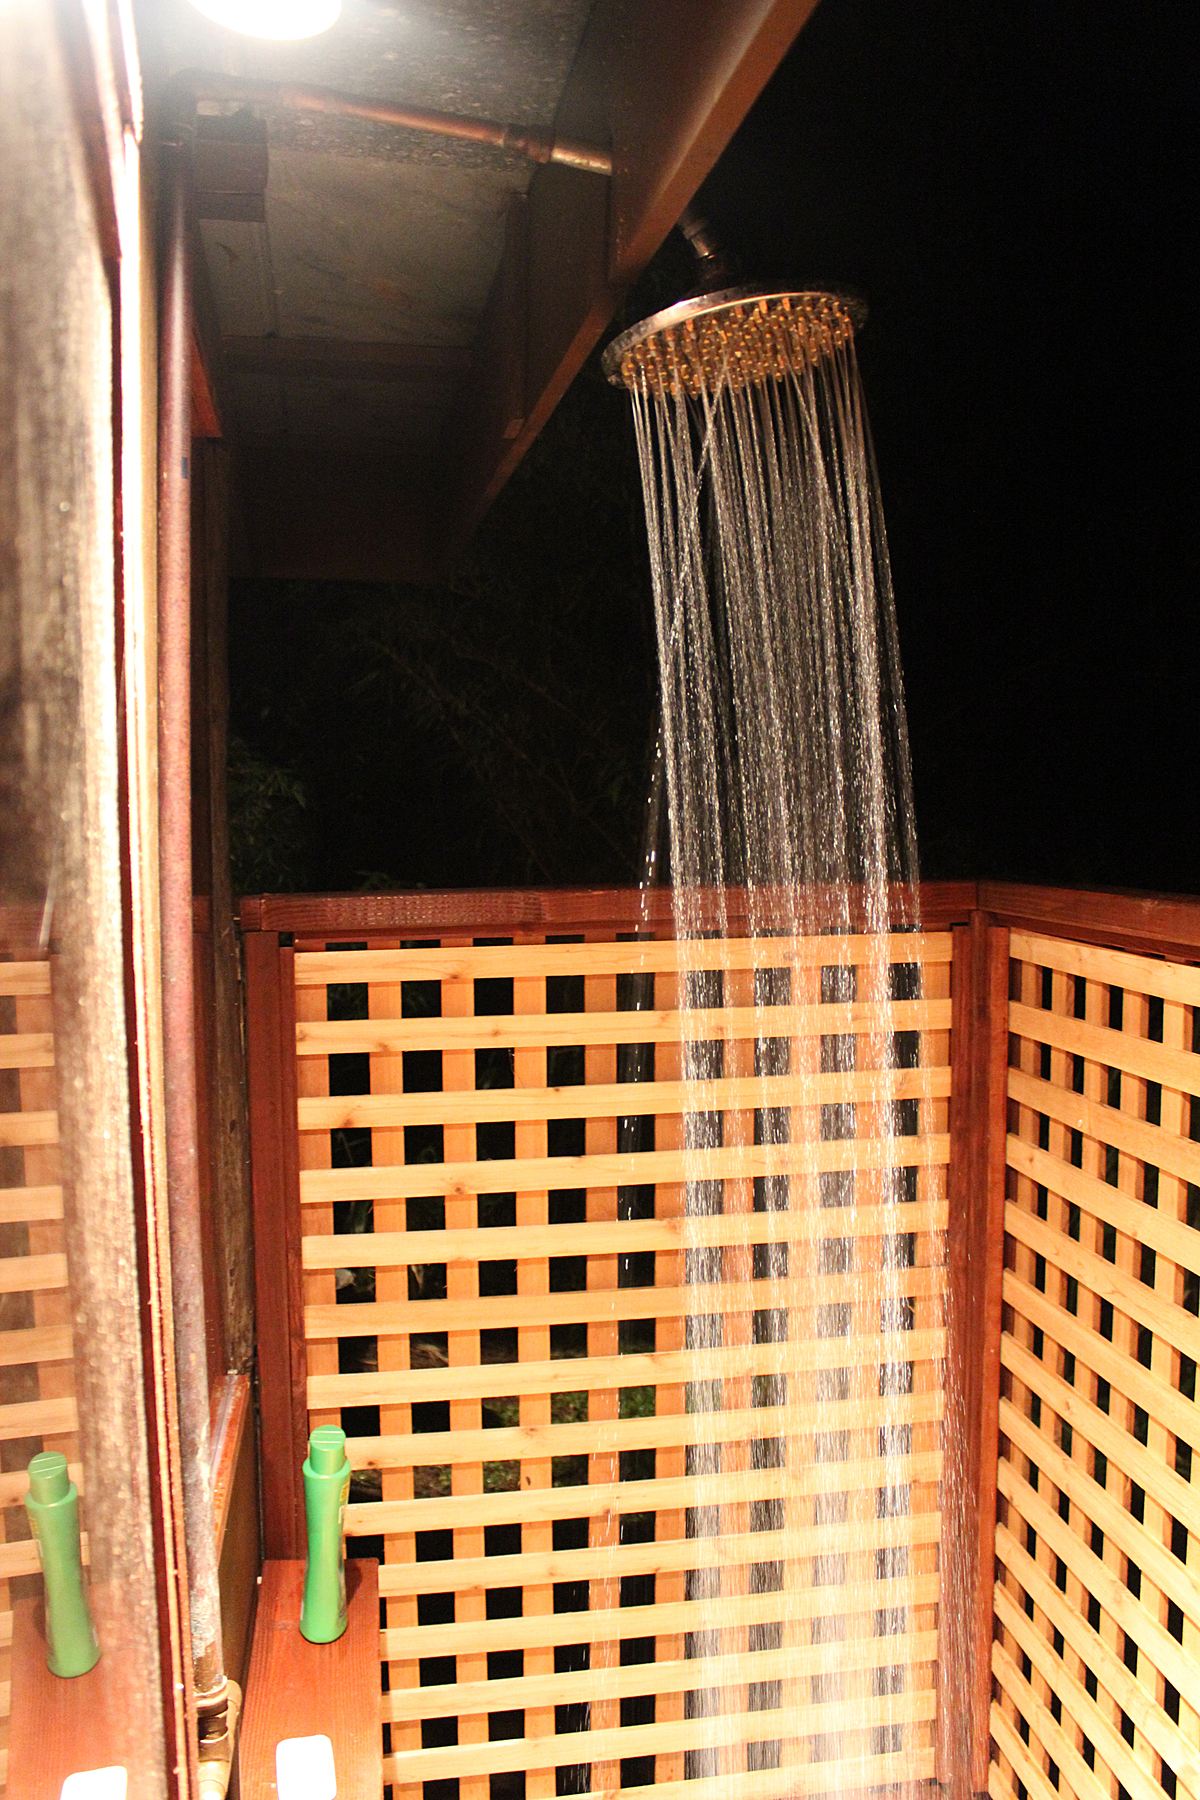 View of the shower